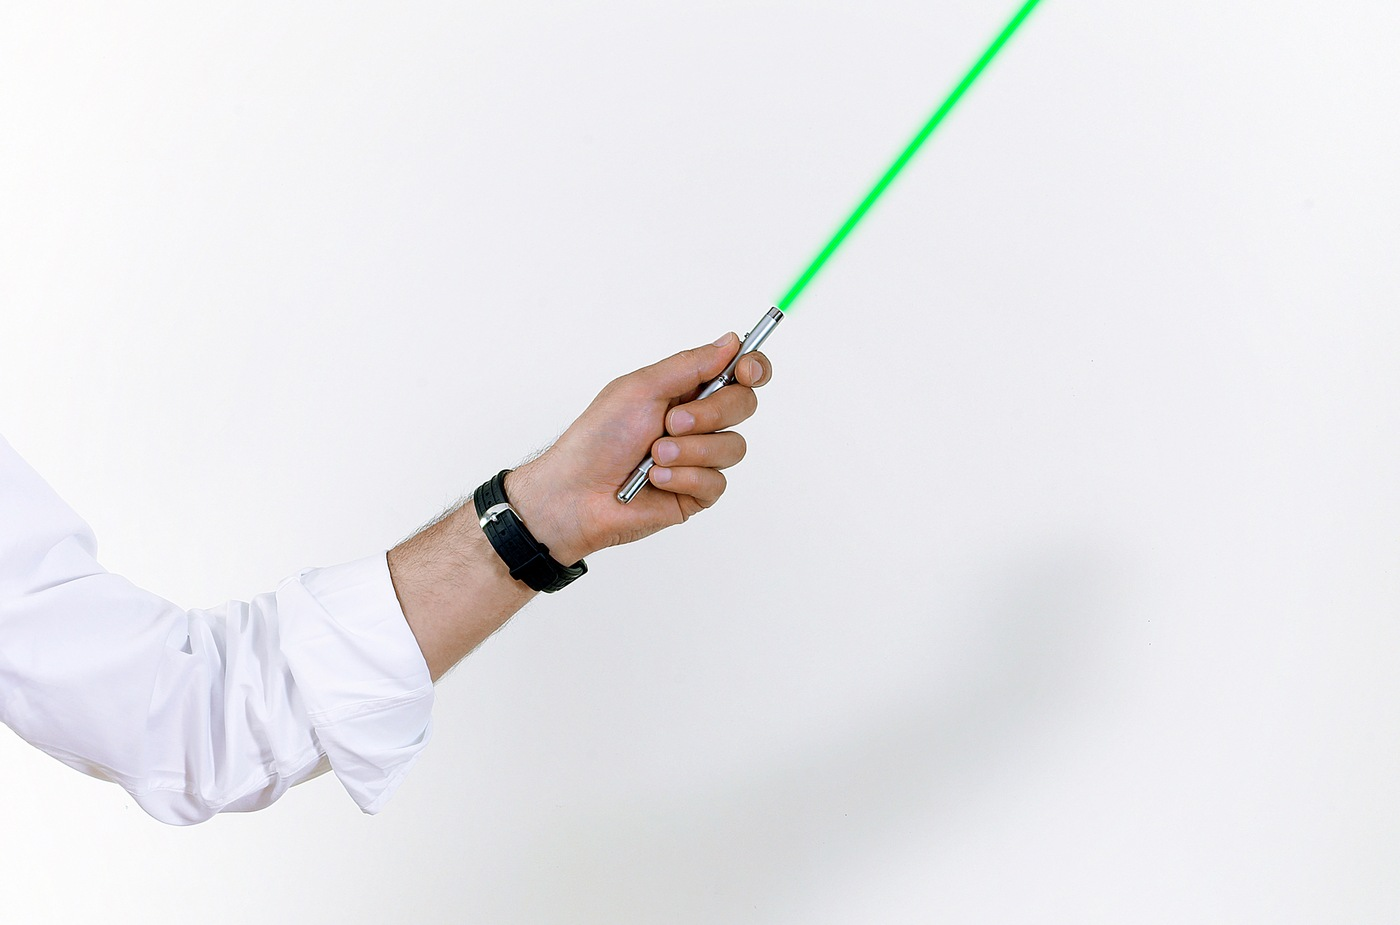 Stock image depicting person holding laser pointer.